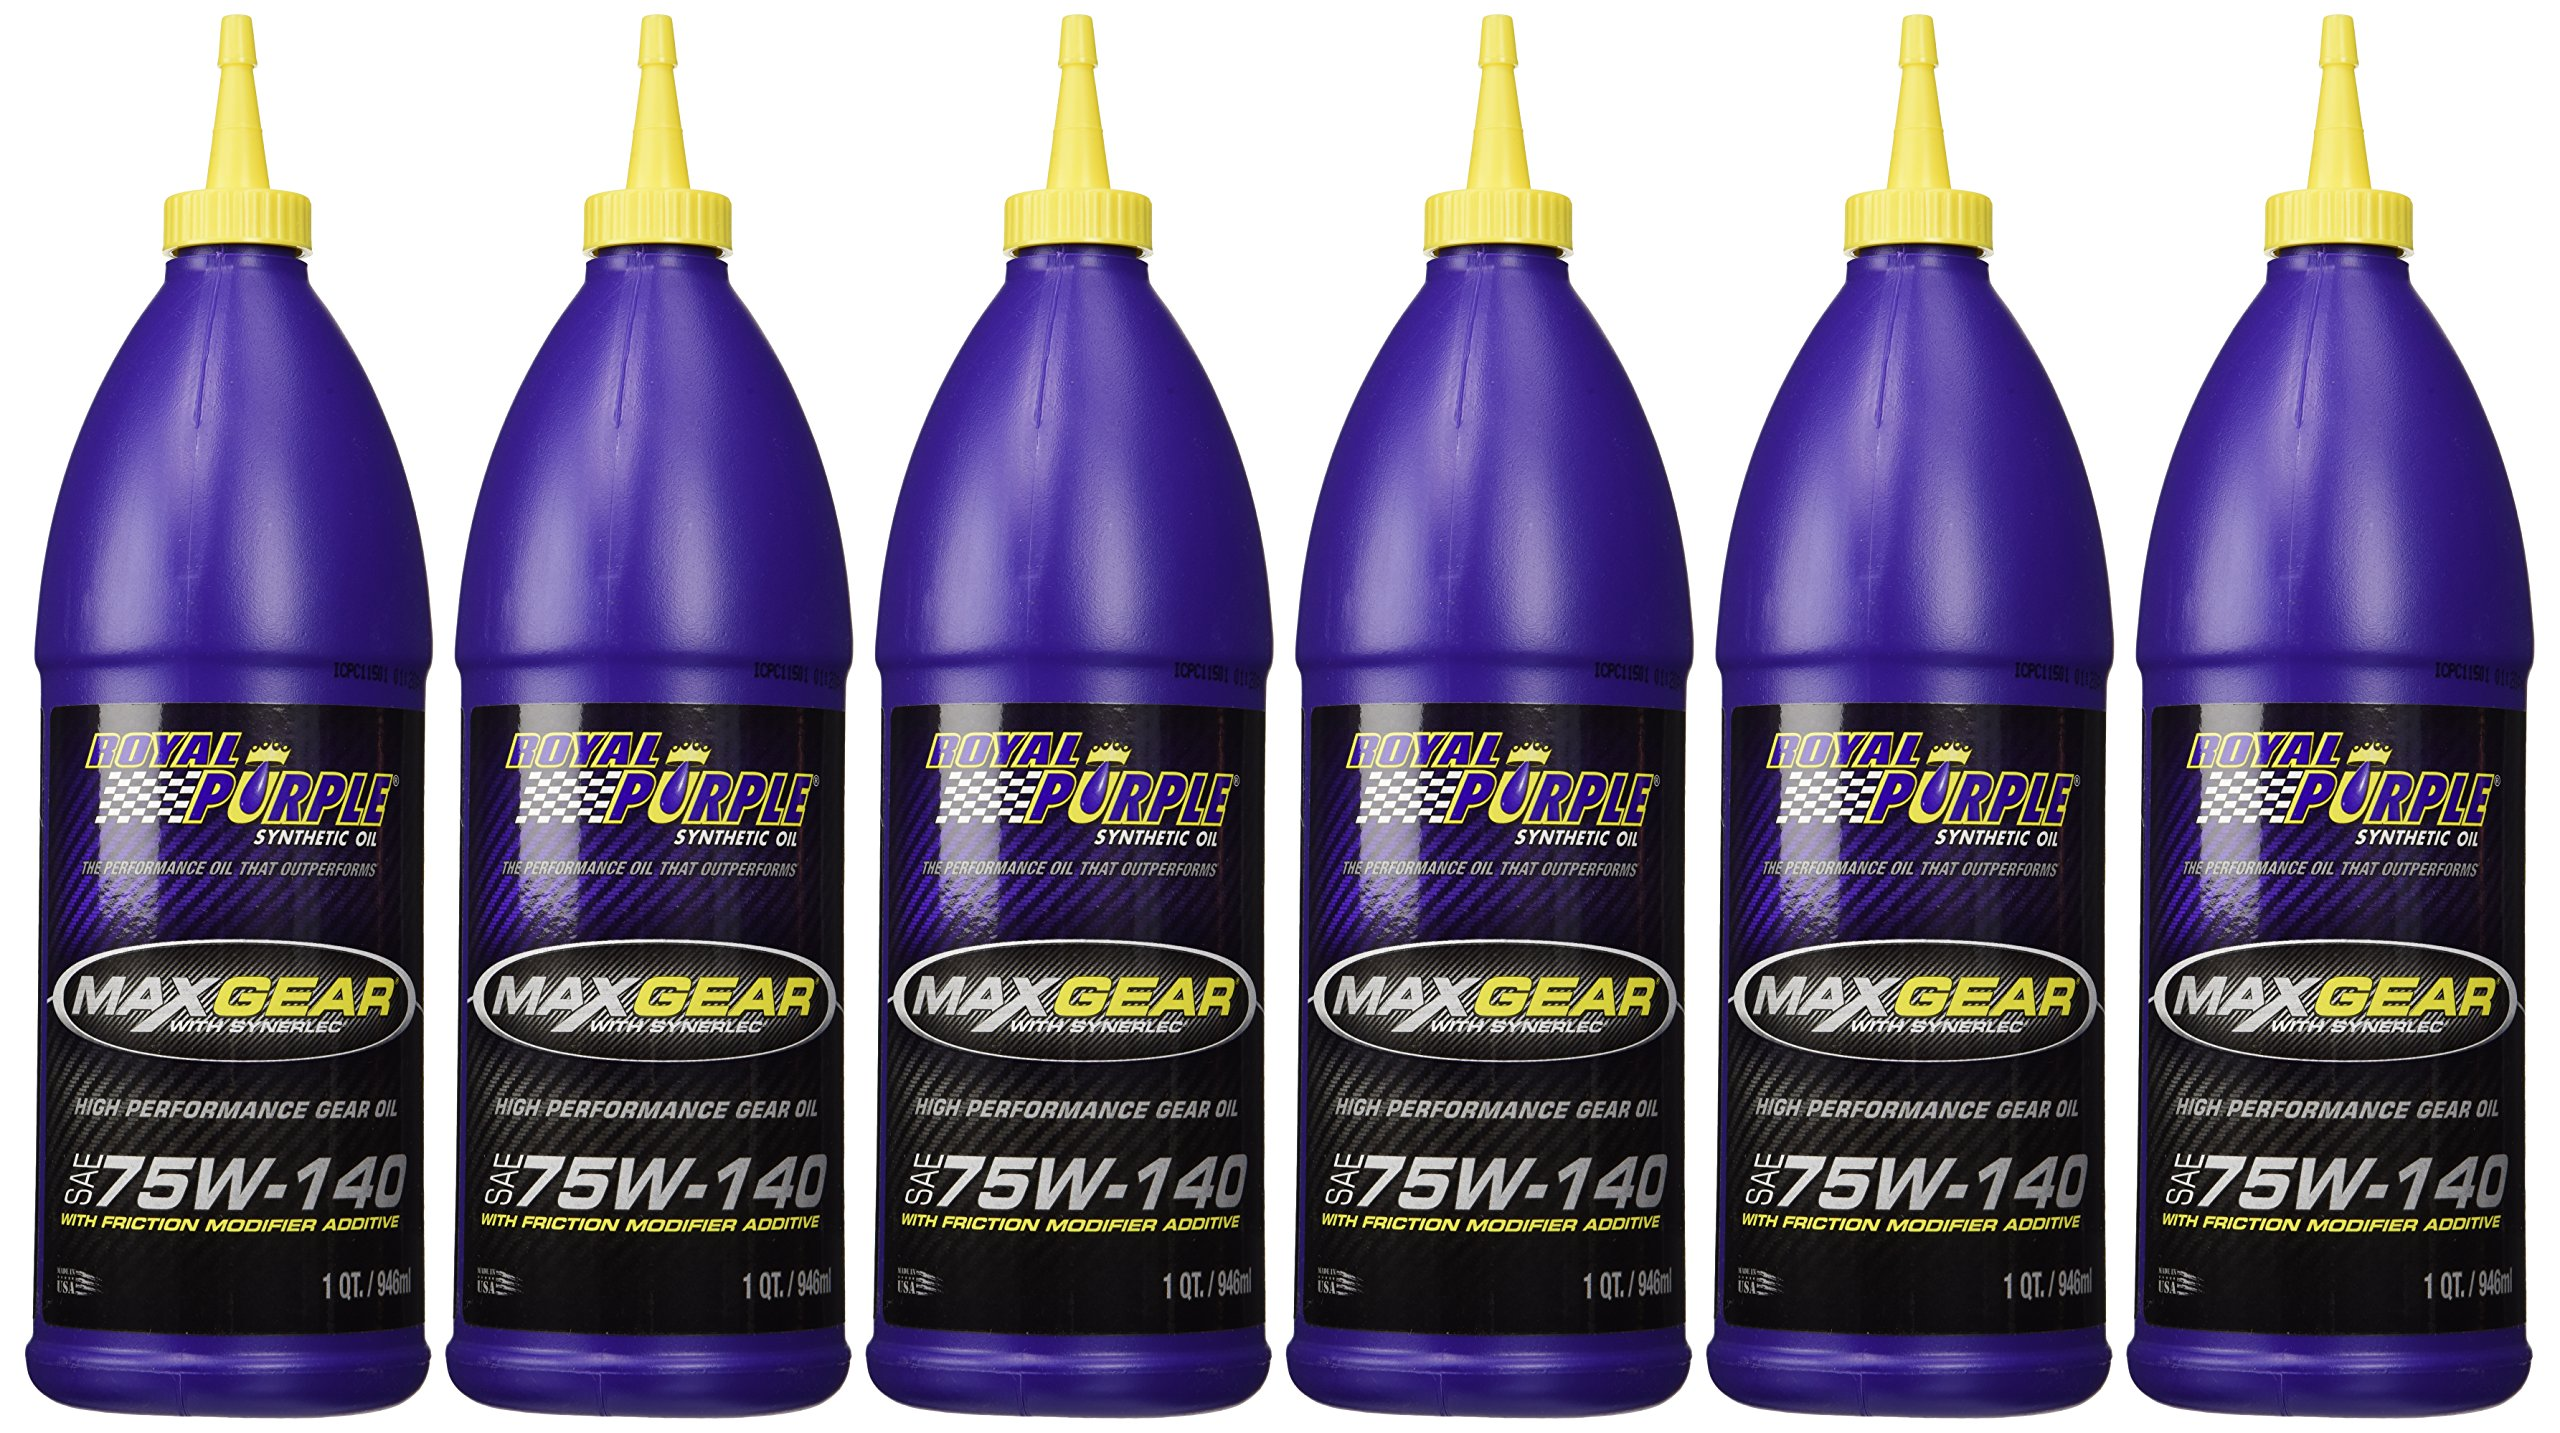 Royal Purple 01301 Max-Gear Synthetic Gear Lube Oil 75W140 Pack of 6 Quarts